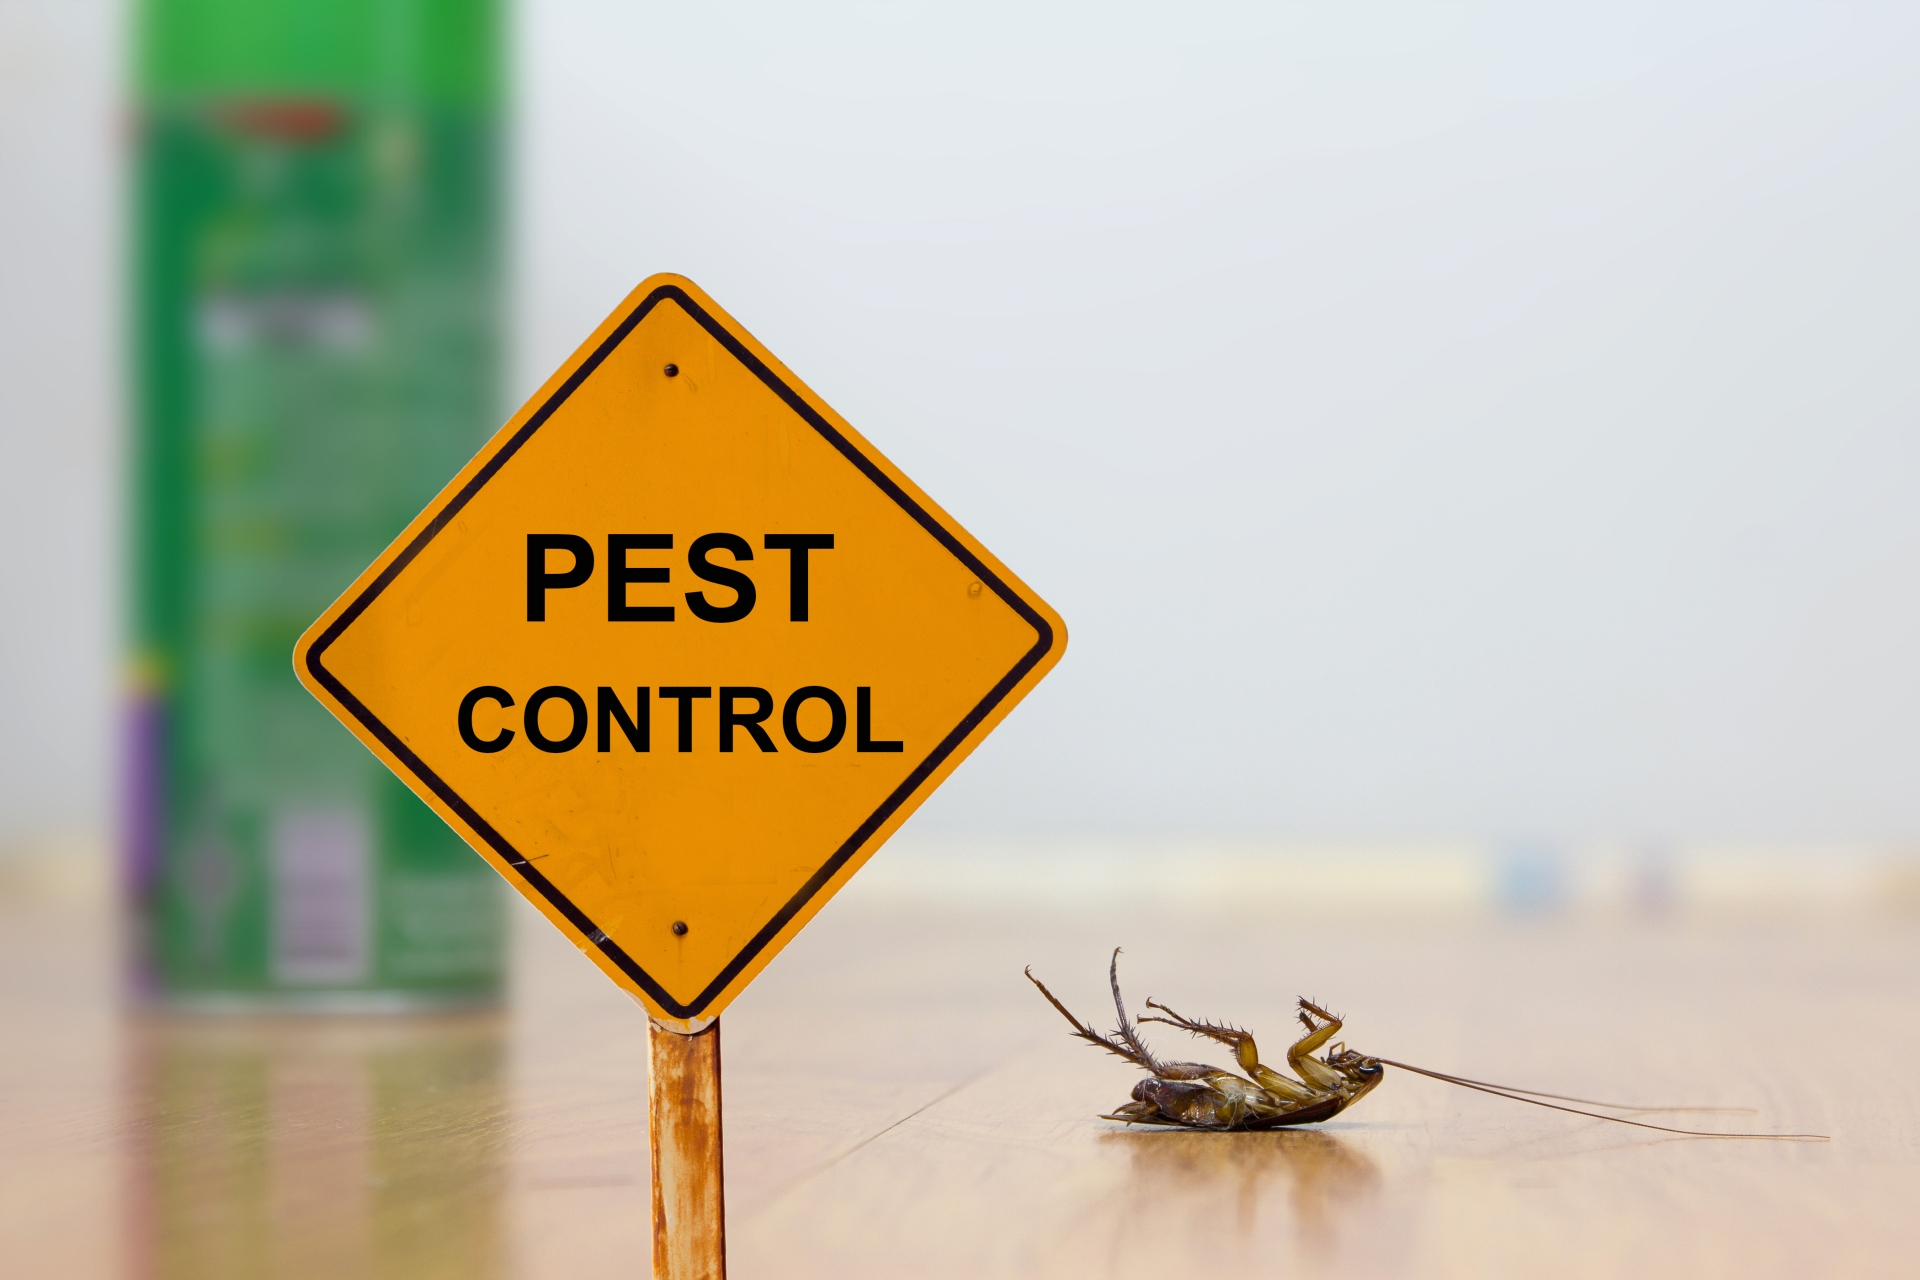 24 Hour Pest Control, Pest Control in Loughton, High Beach, IG10. Call Now 020 8166 9746